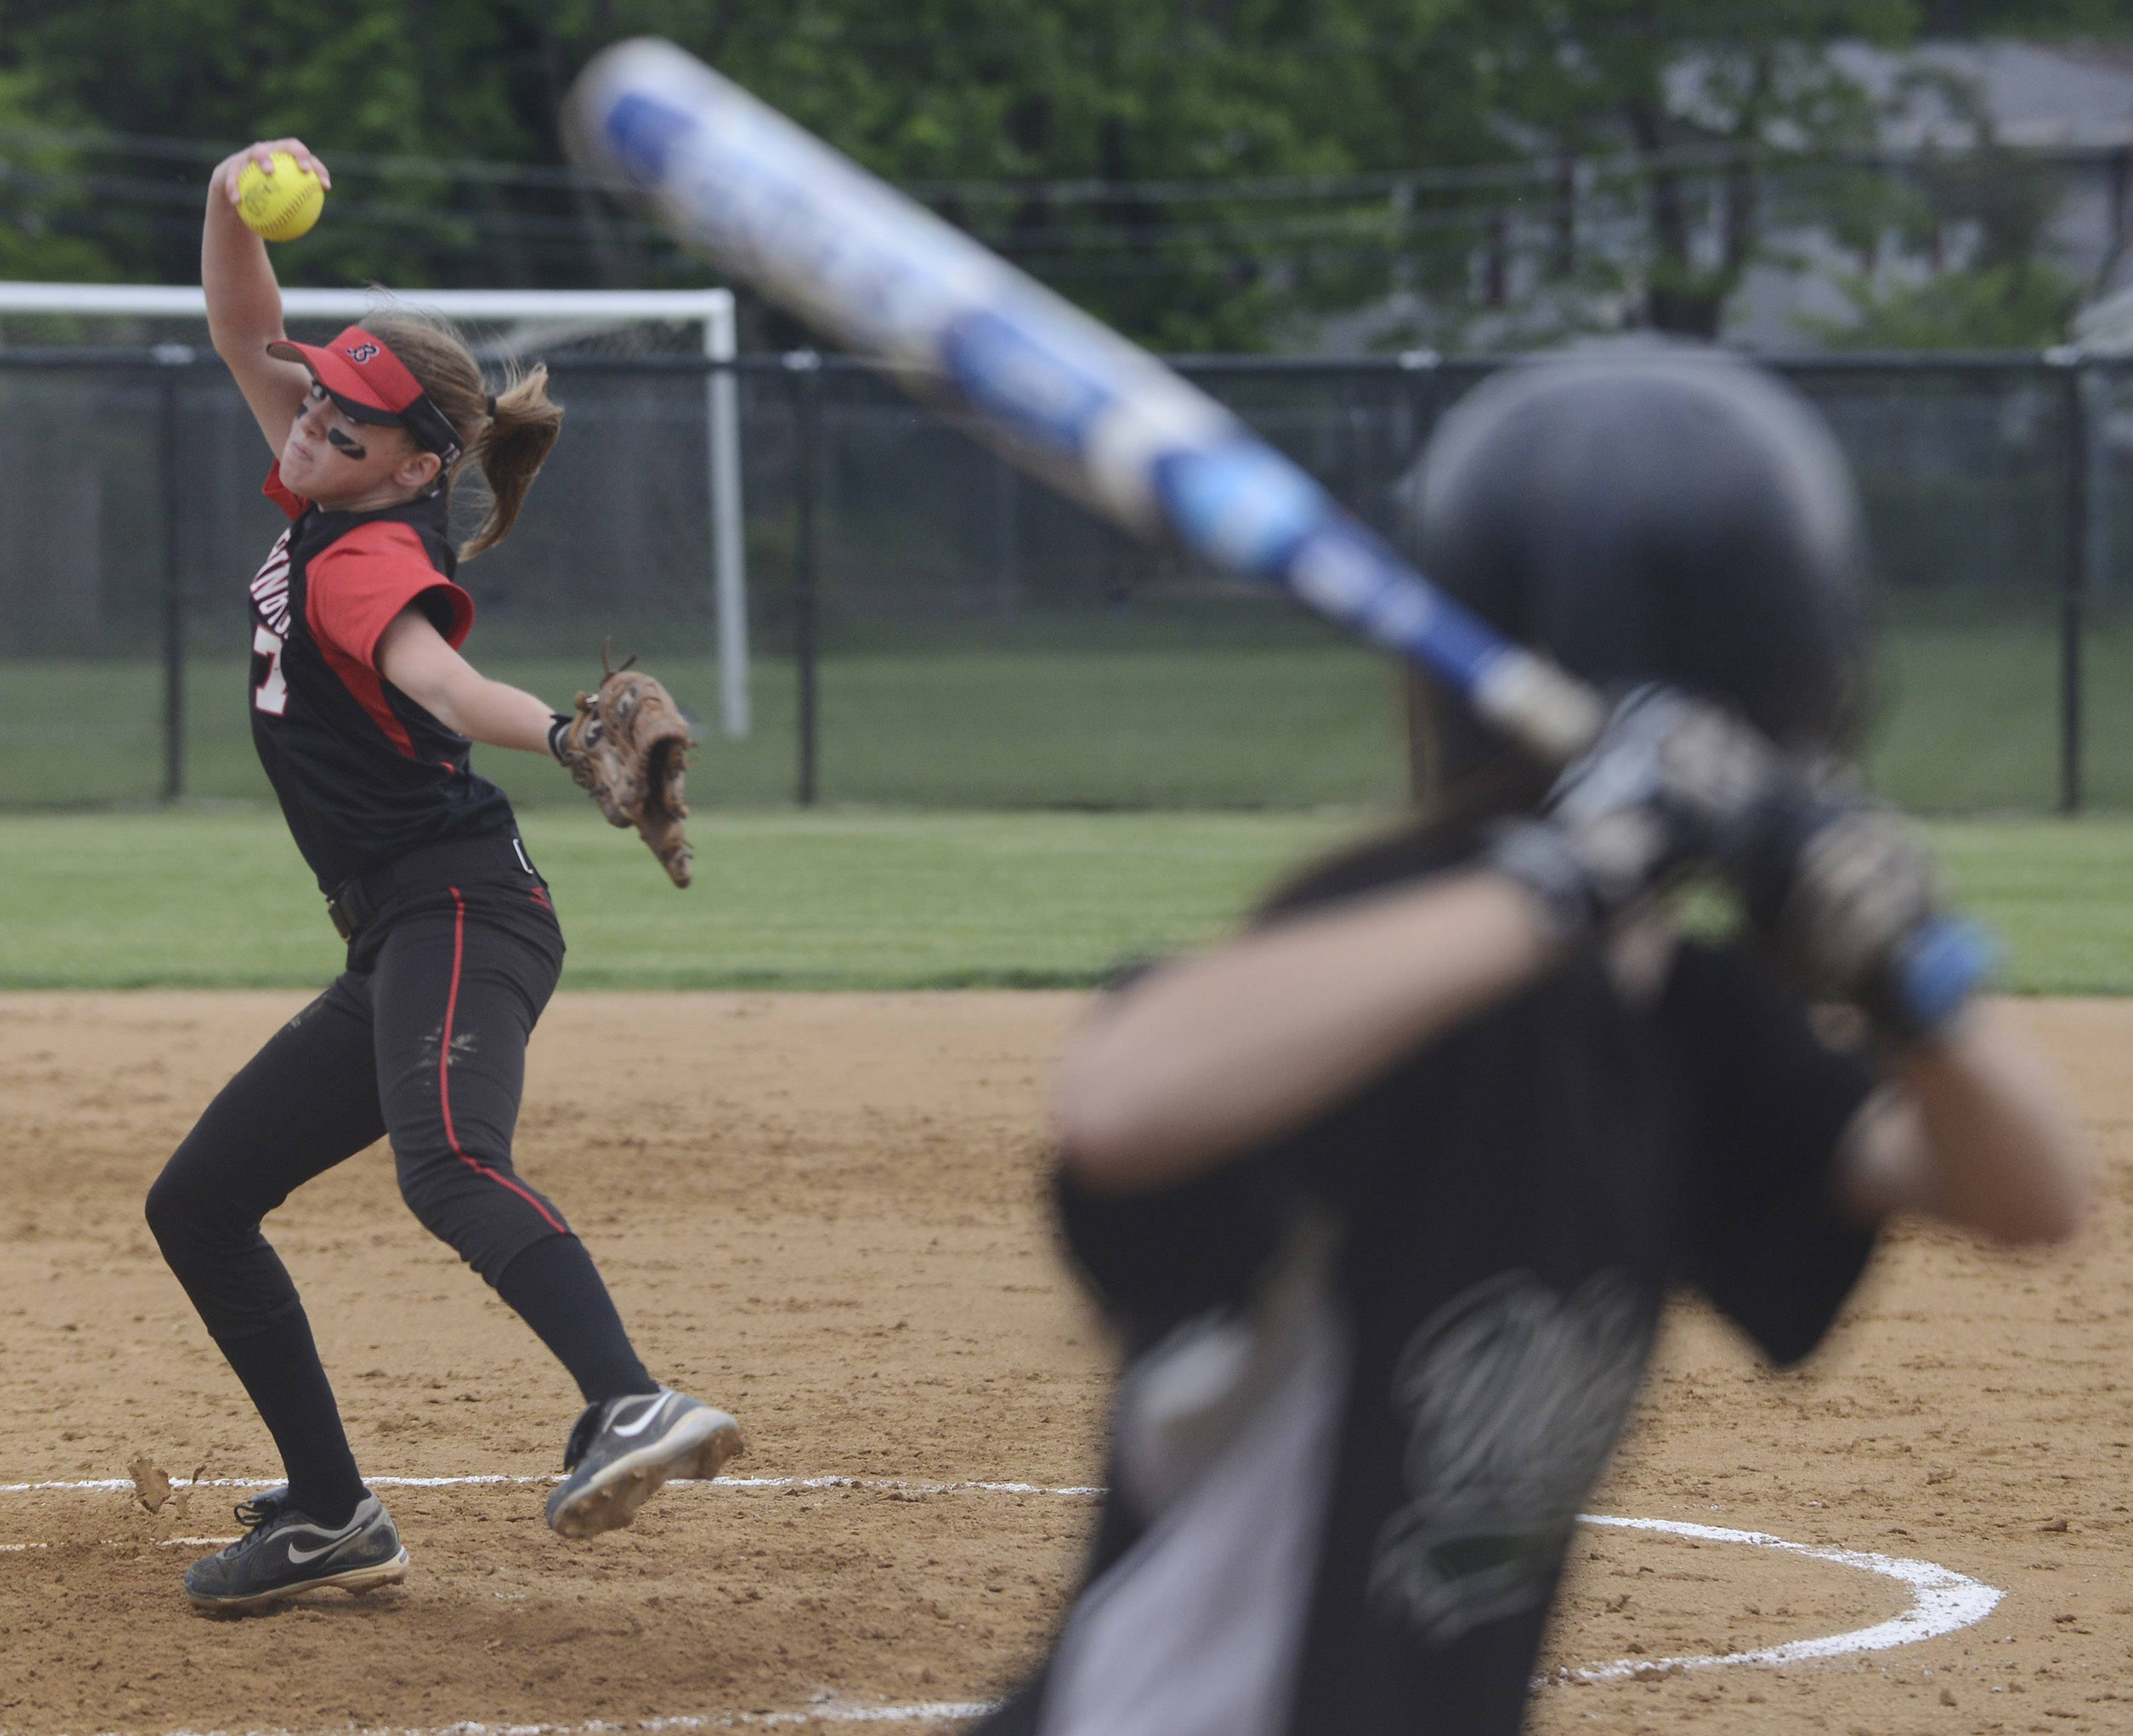 Barrington junior Keenan Dolezal delivers against Fremd last season; she'll pitch for Loyola in her collegiate years.